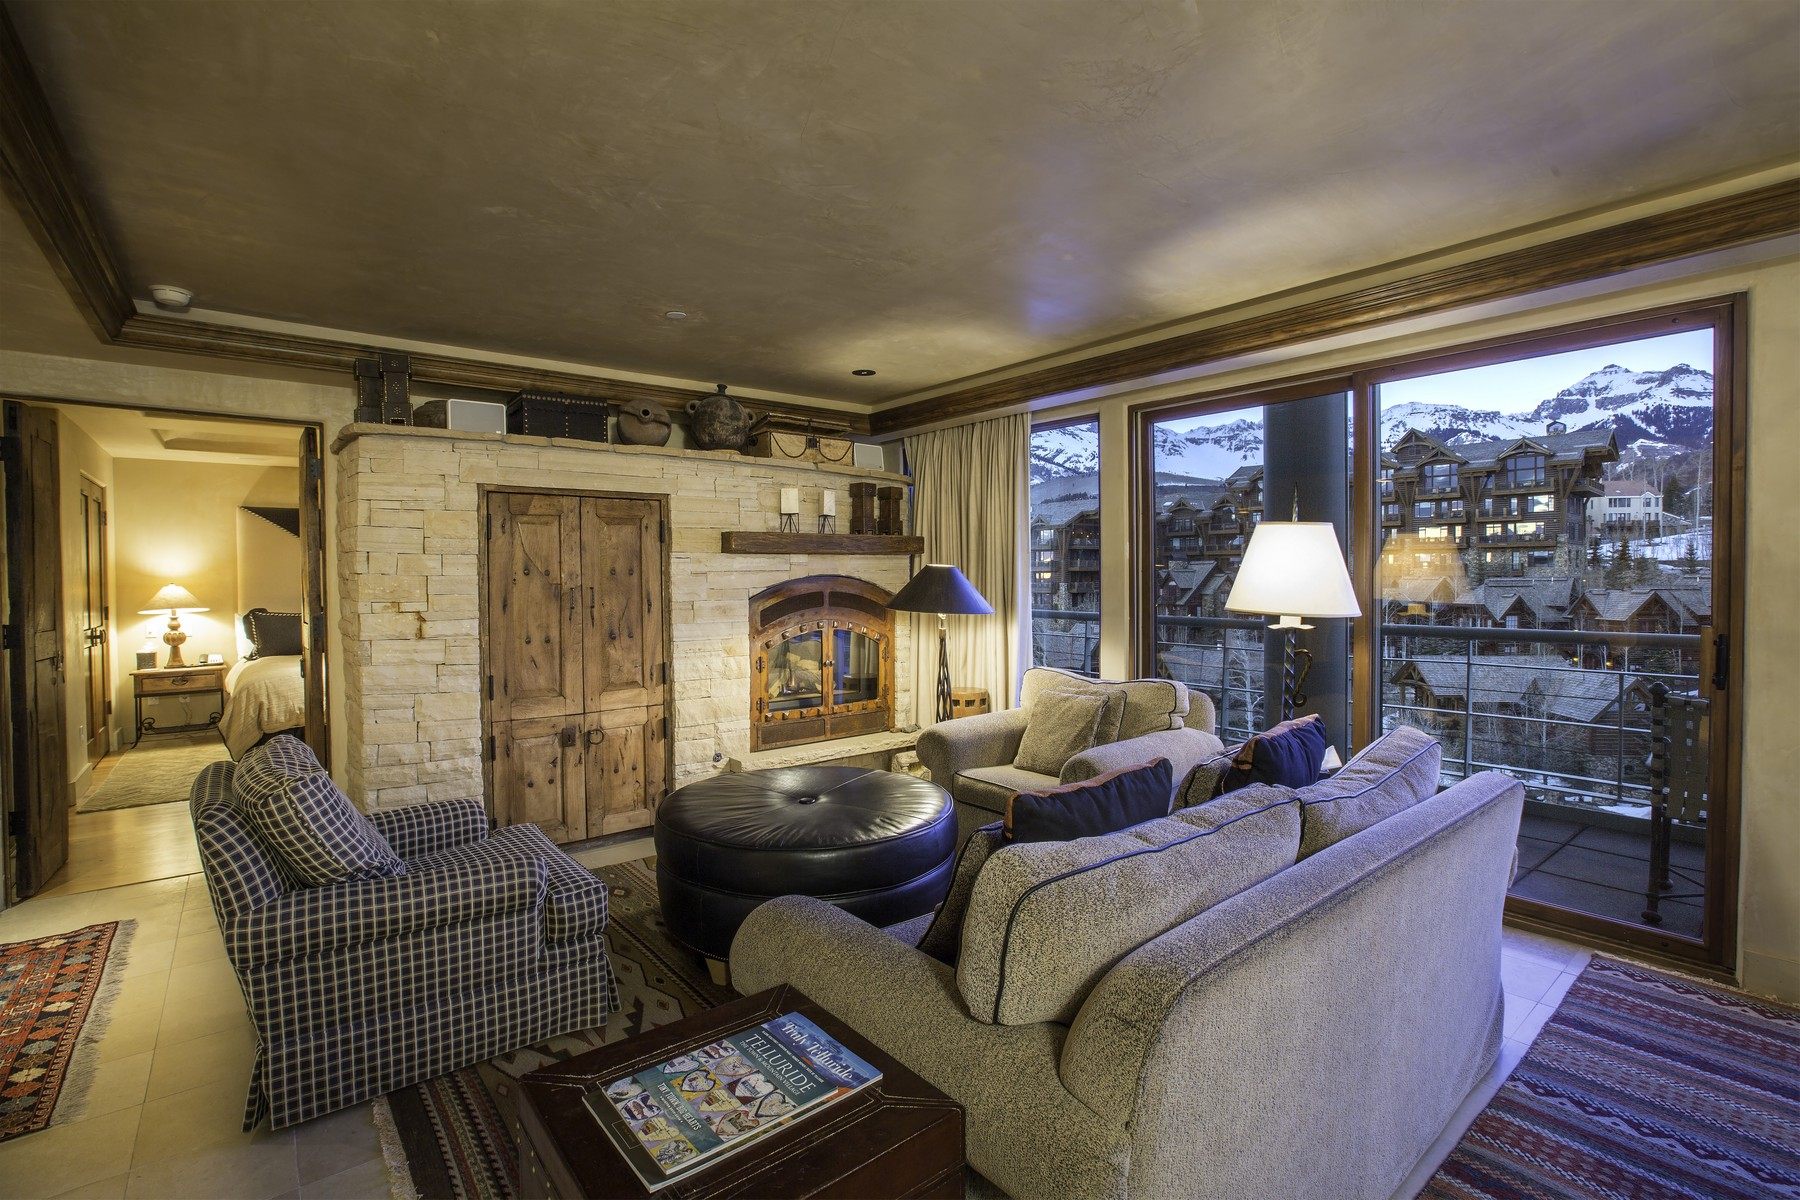 Condominium for Sale at Peaks Resort and Spa Unit 603 136 Country Club Drive, Unit 603 Telluride, Colorado, 81435 United States